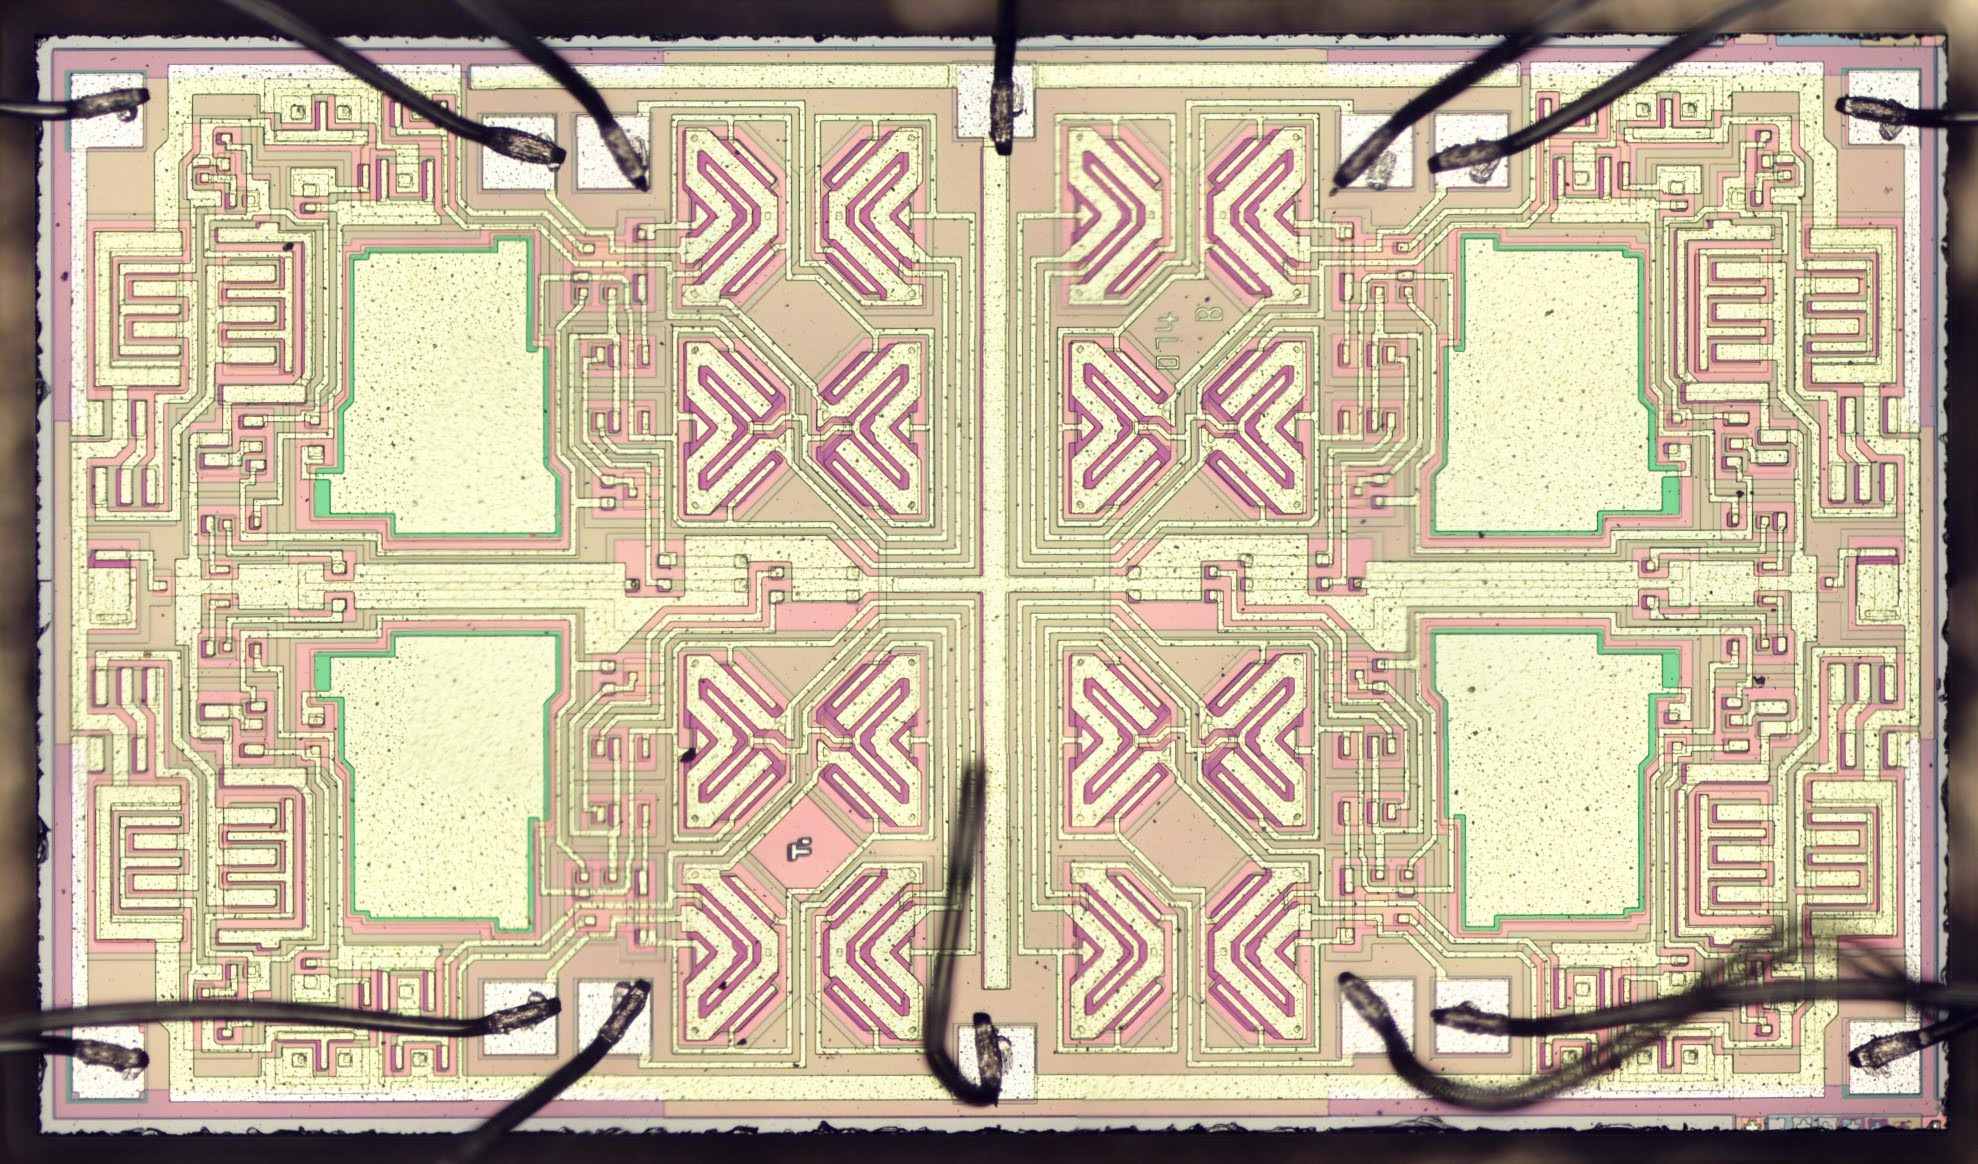 Silicon Die Analysis Inside An Op Amp With Interesting Butterfly Solving Circuit Photo Of The Tl084 Quad Bond Wires Got A Bit Bent